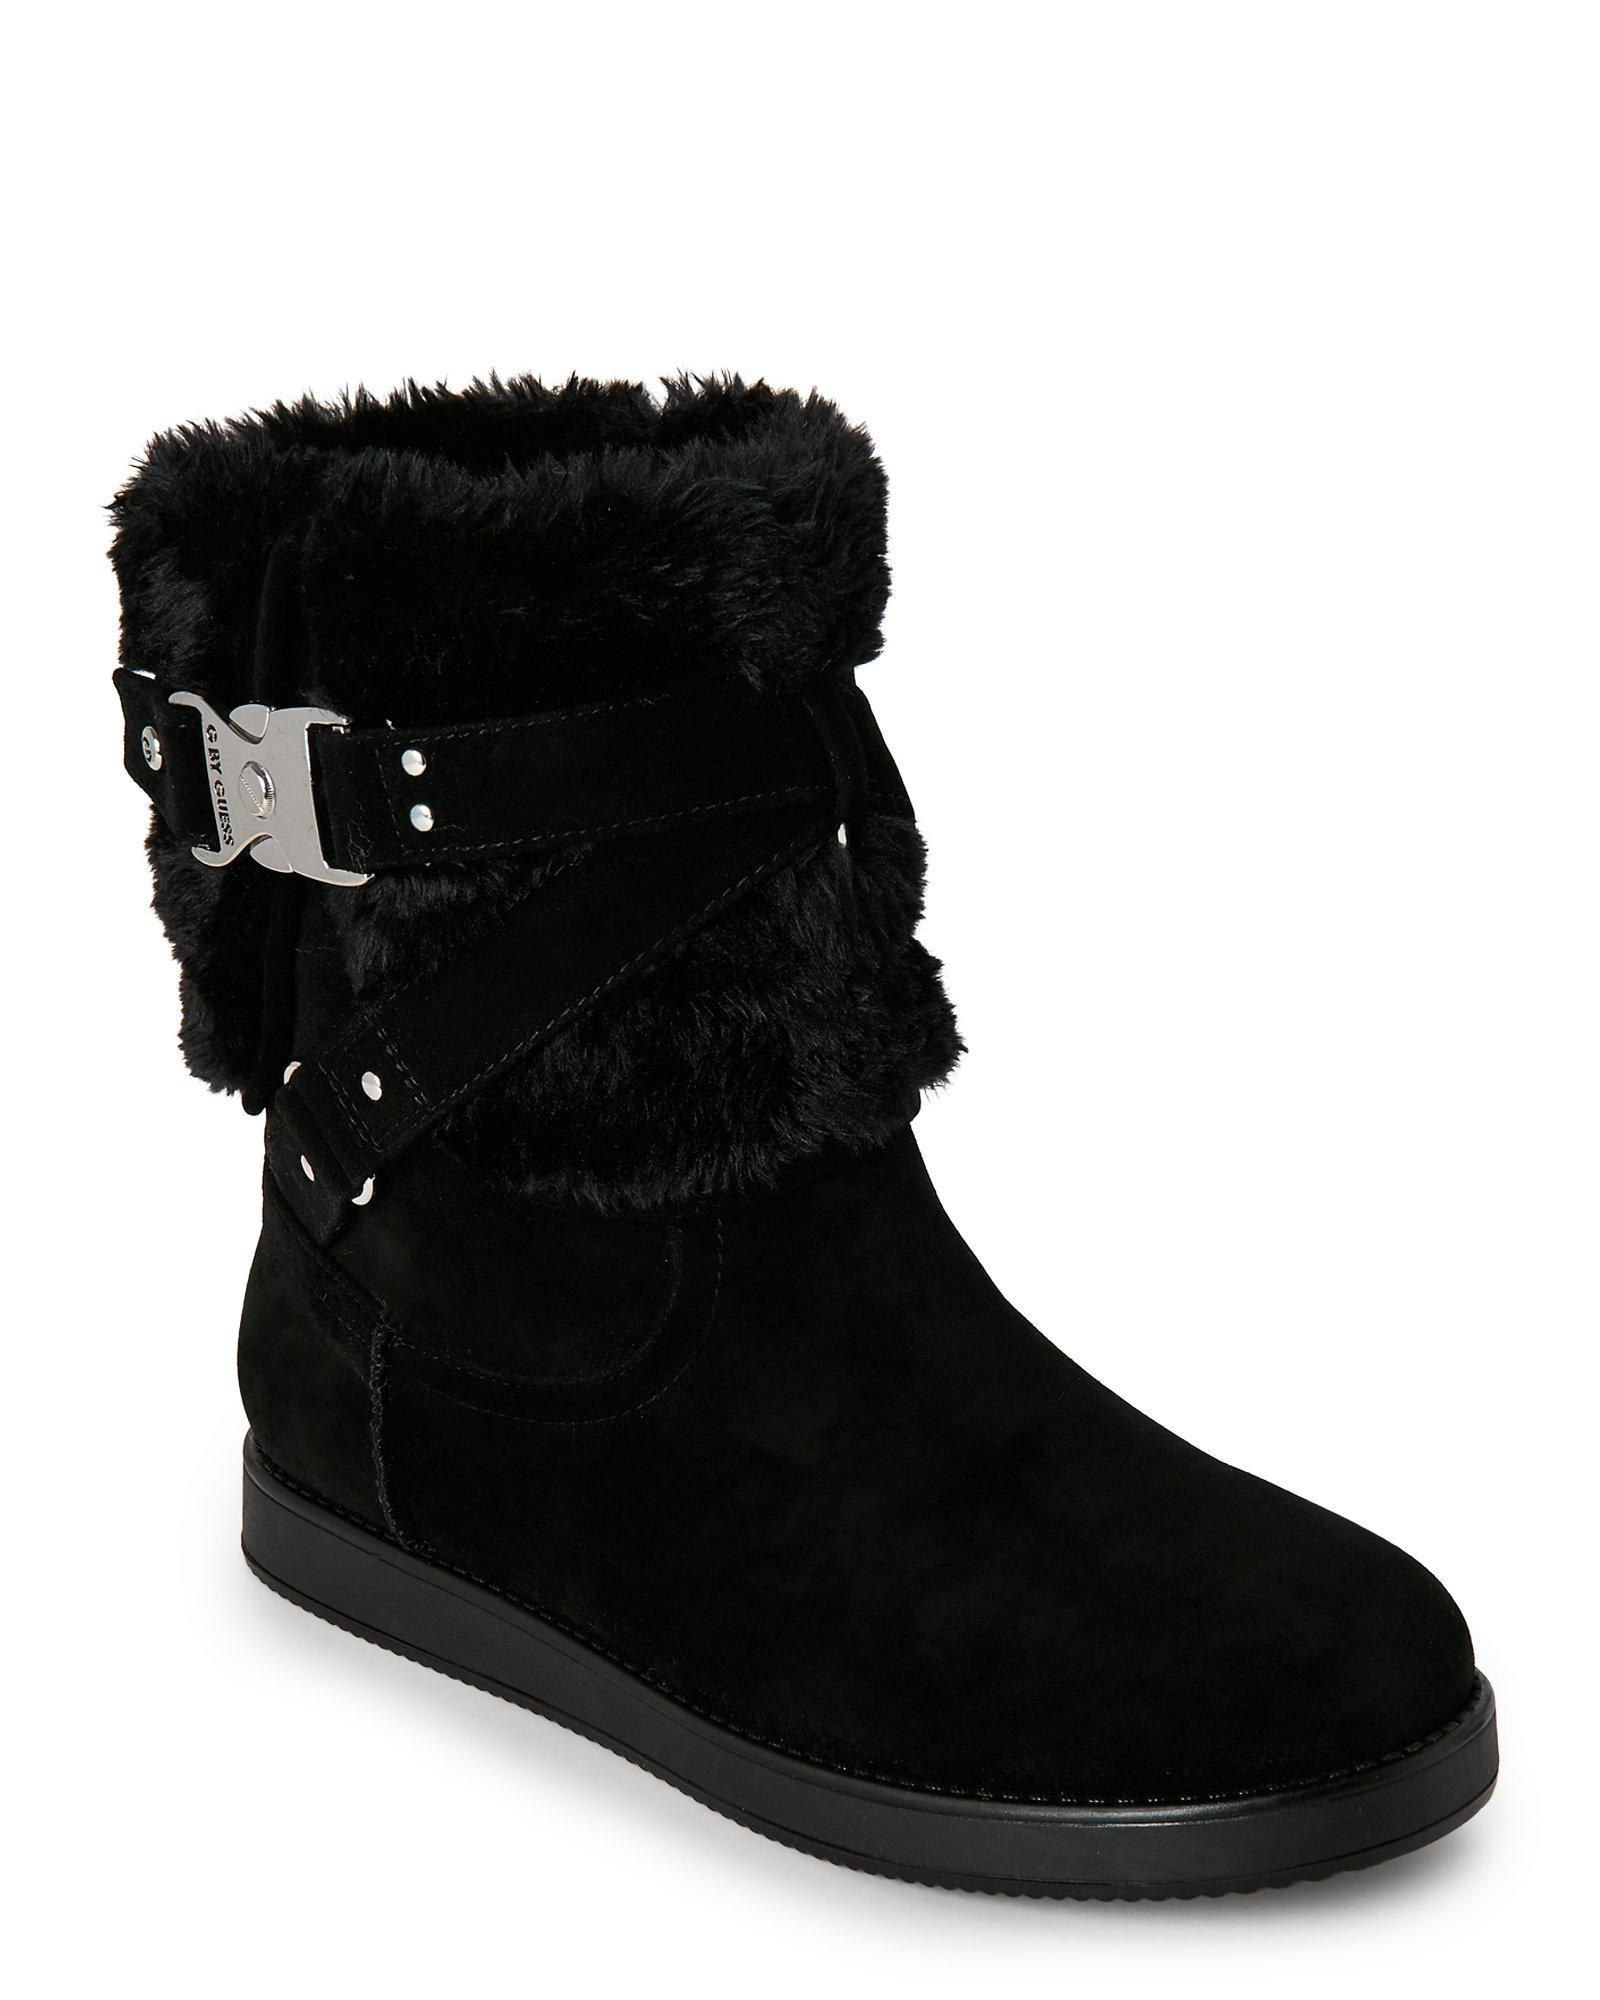 Lyst G By Guess Black Ashlee Buckled Faux Fur Boots In Black